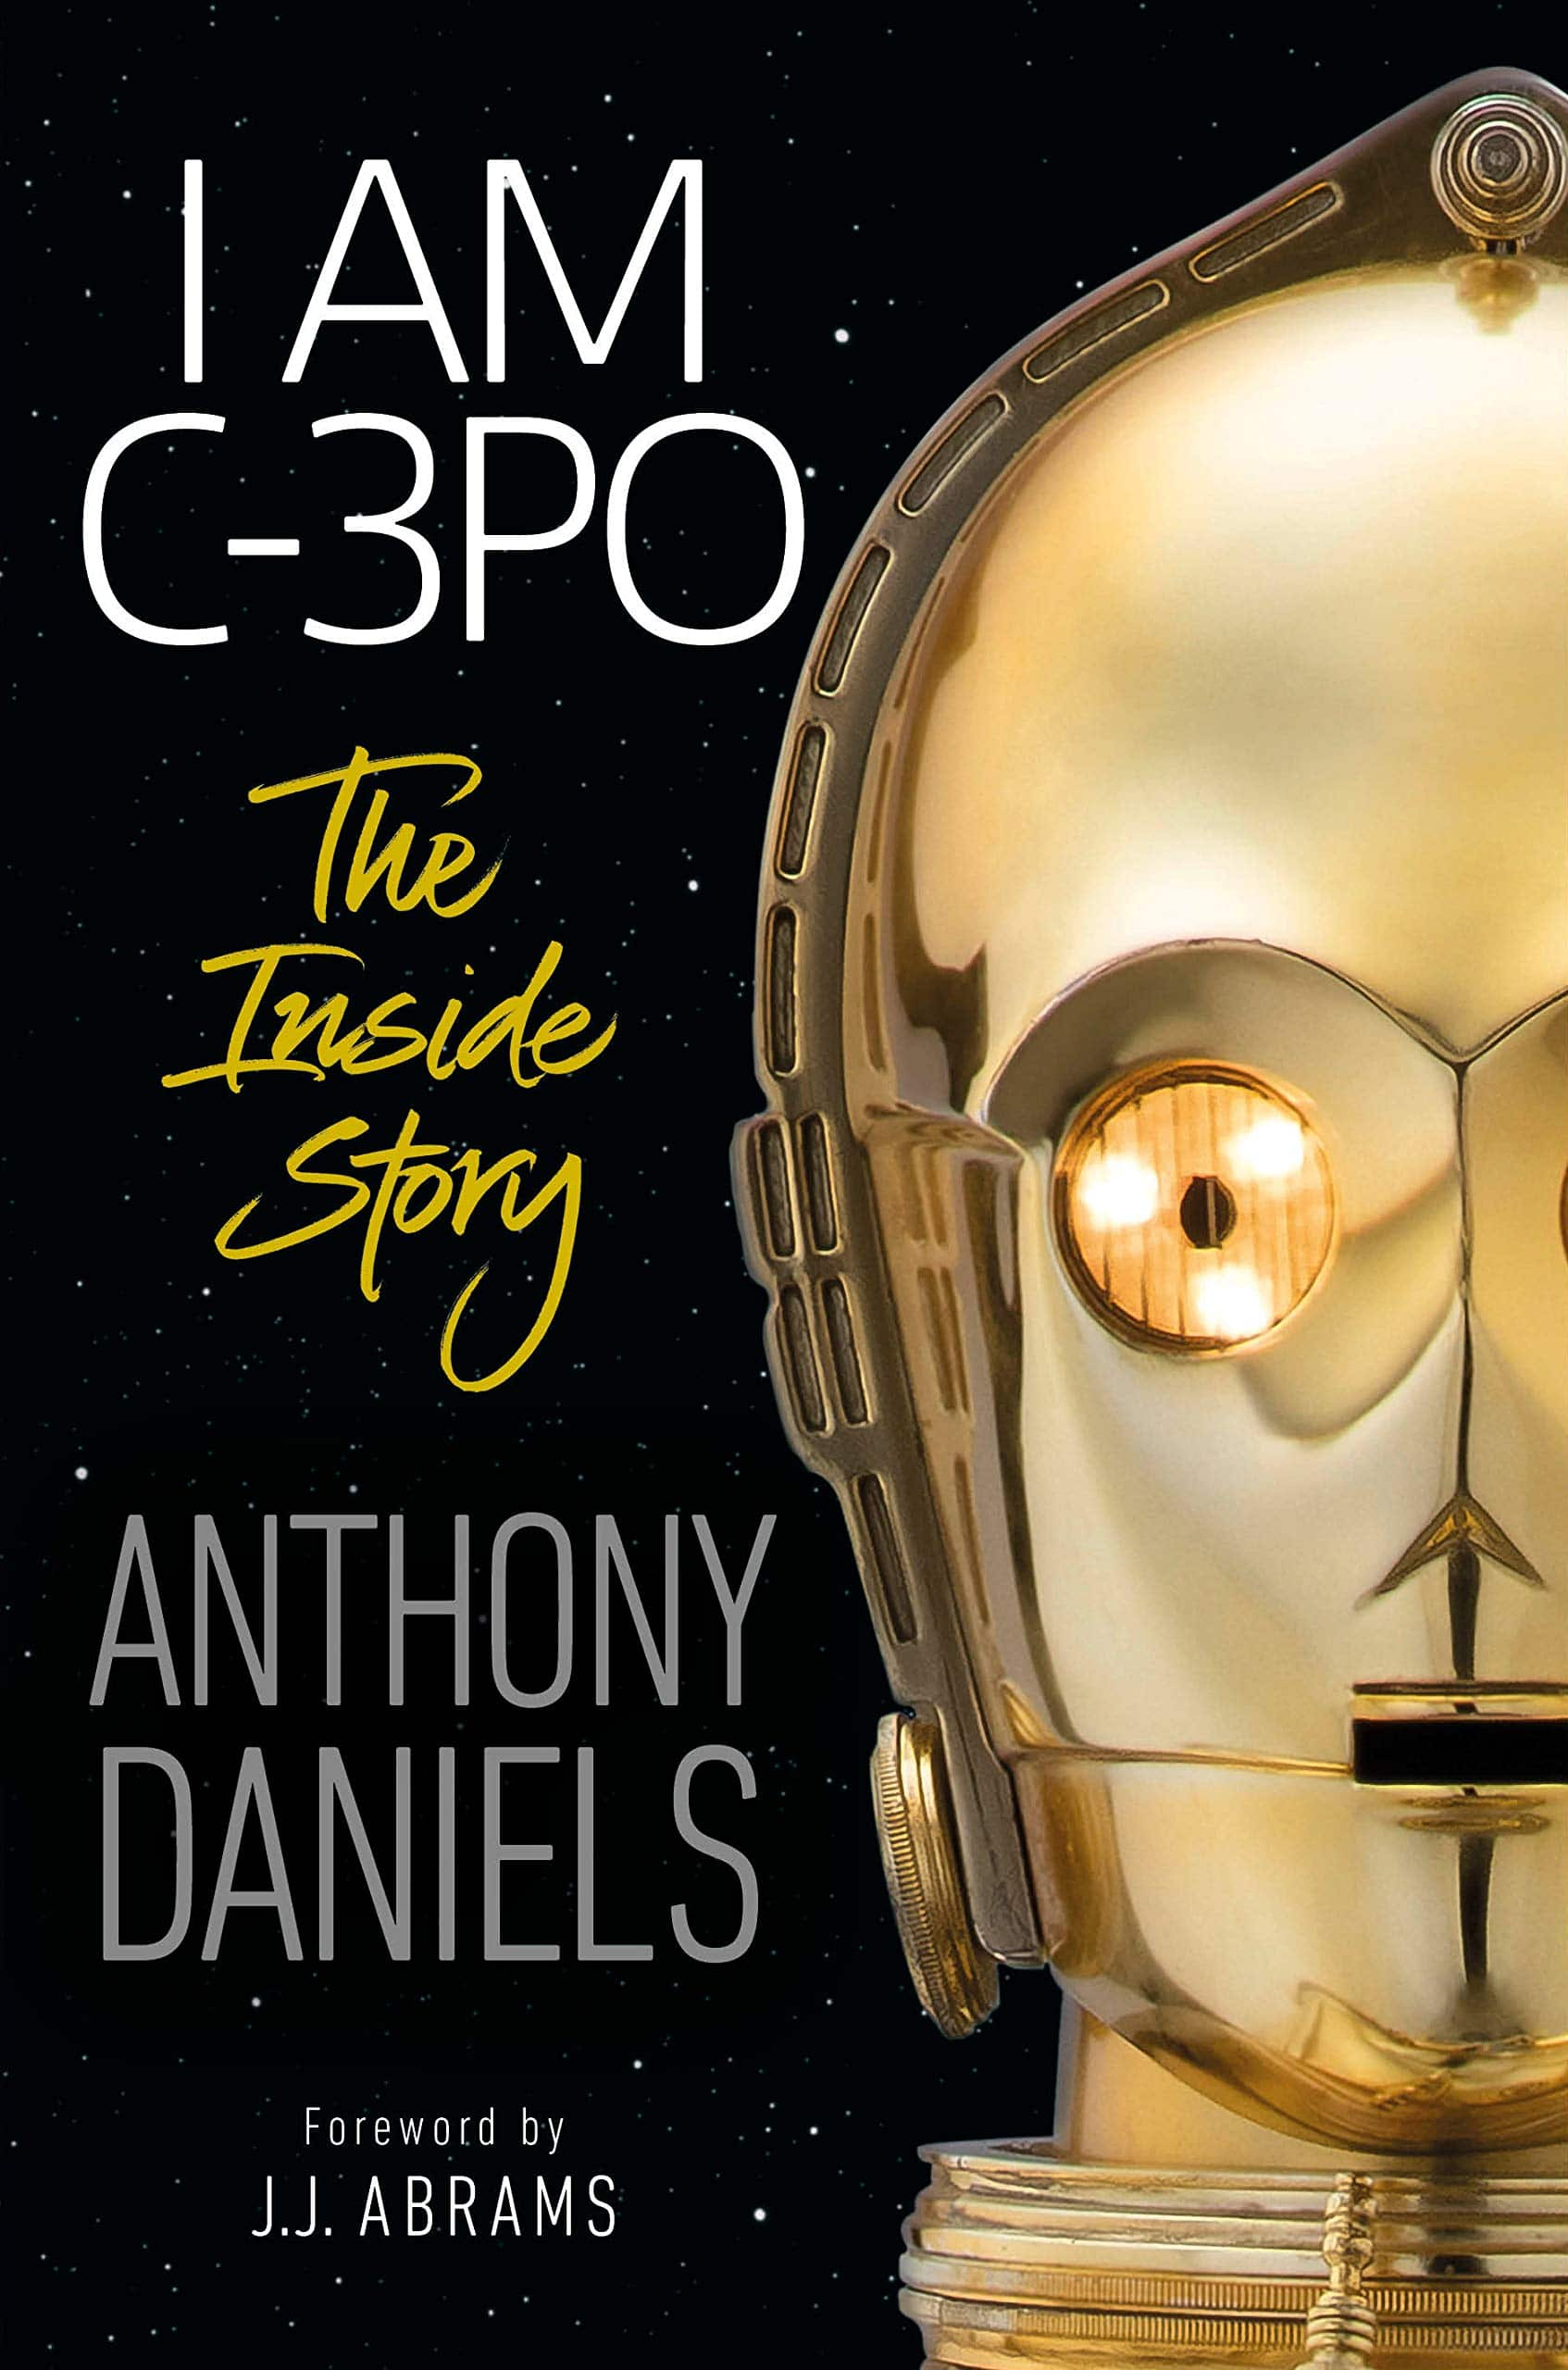 star-wars-gifts-book-c3p0